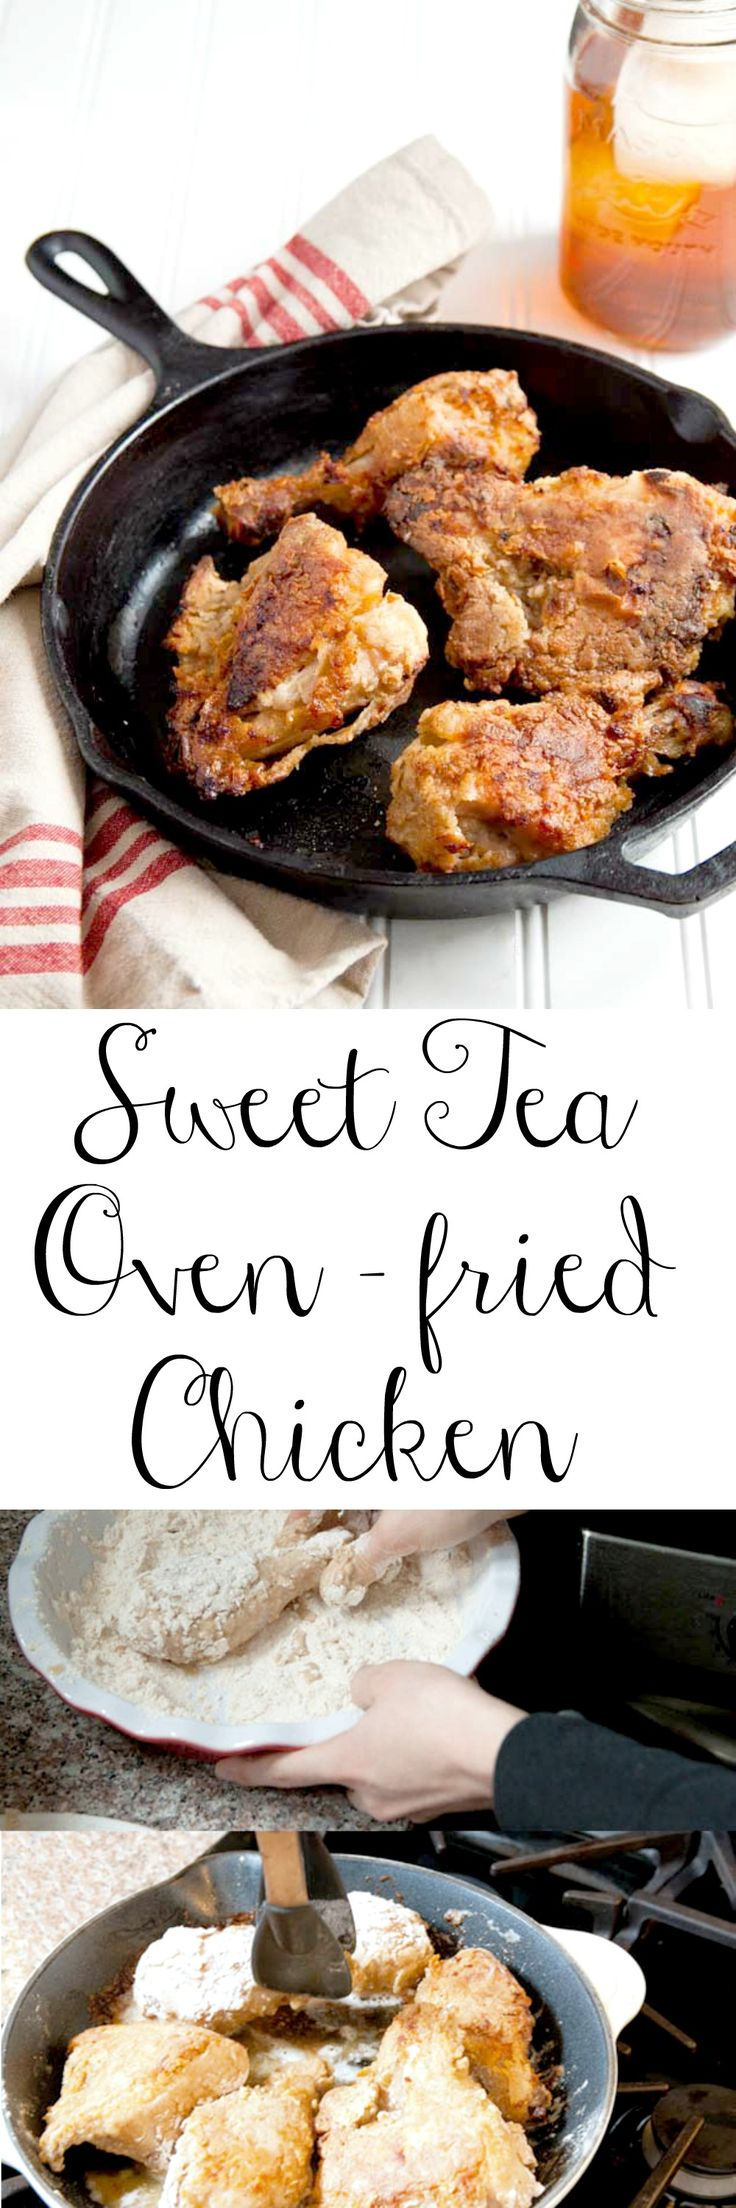 Oven fried chicken! In a sweet tea marinade. Start on Friday, fry on Sunday!